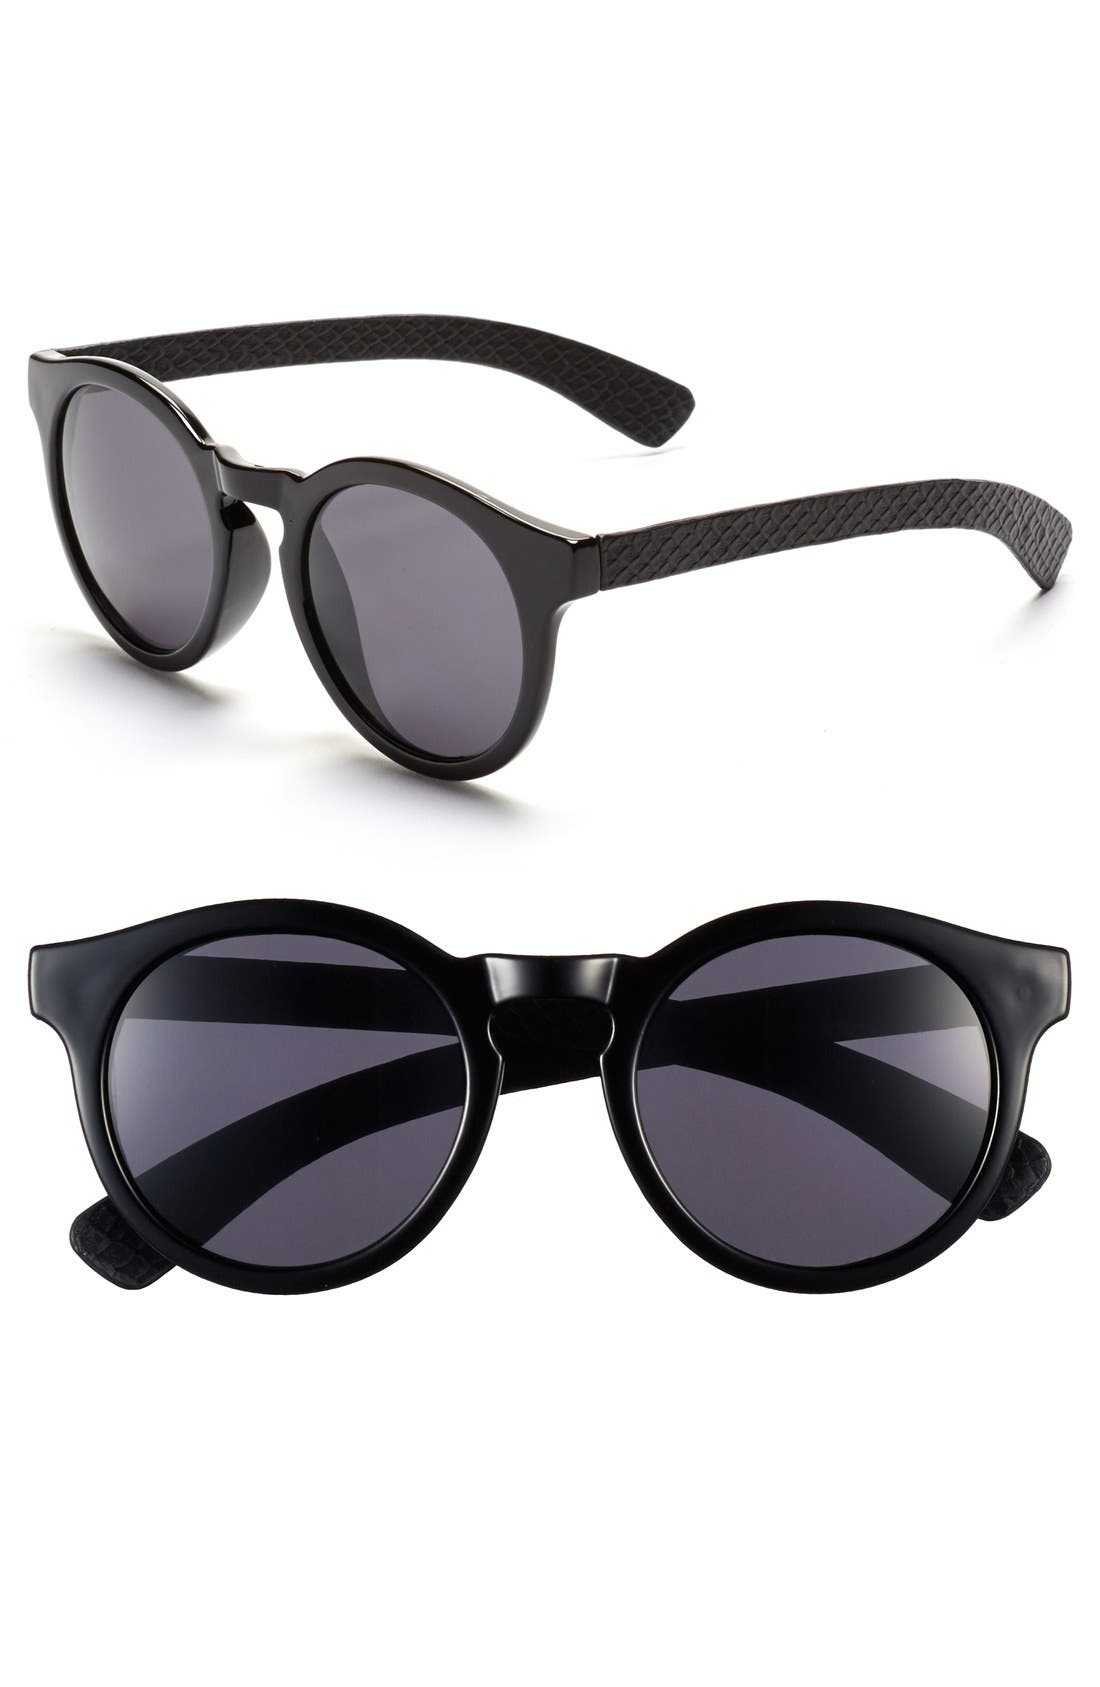 Alternate Image 1 Selected - BP. 52mm Round Sunglasses